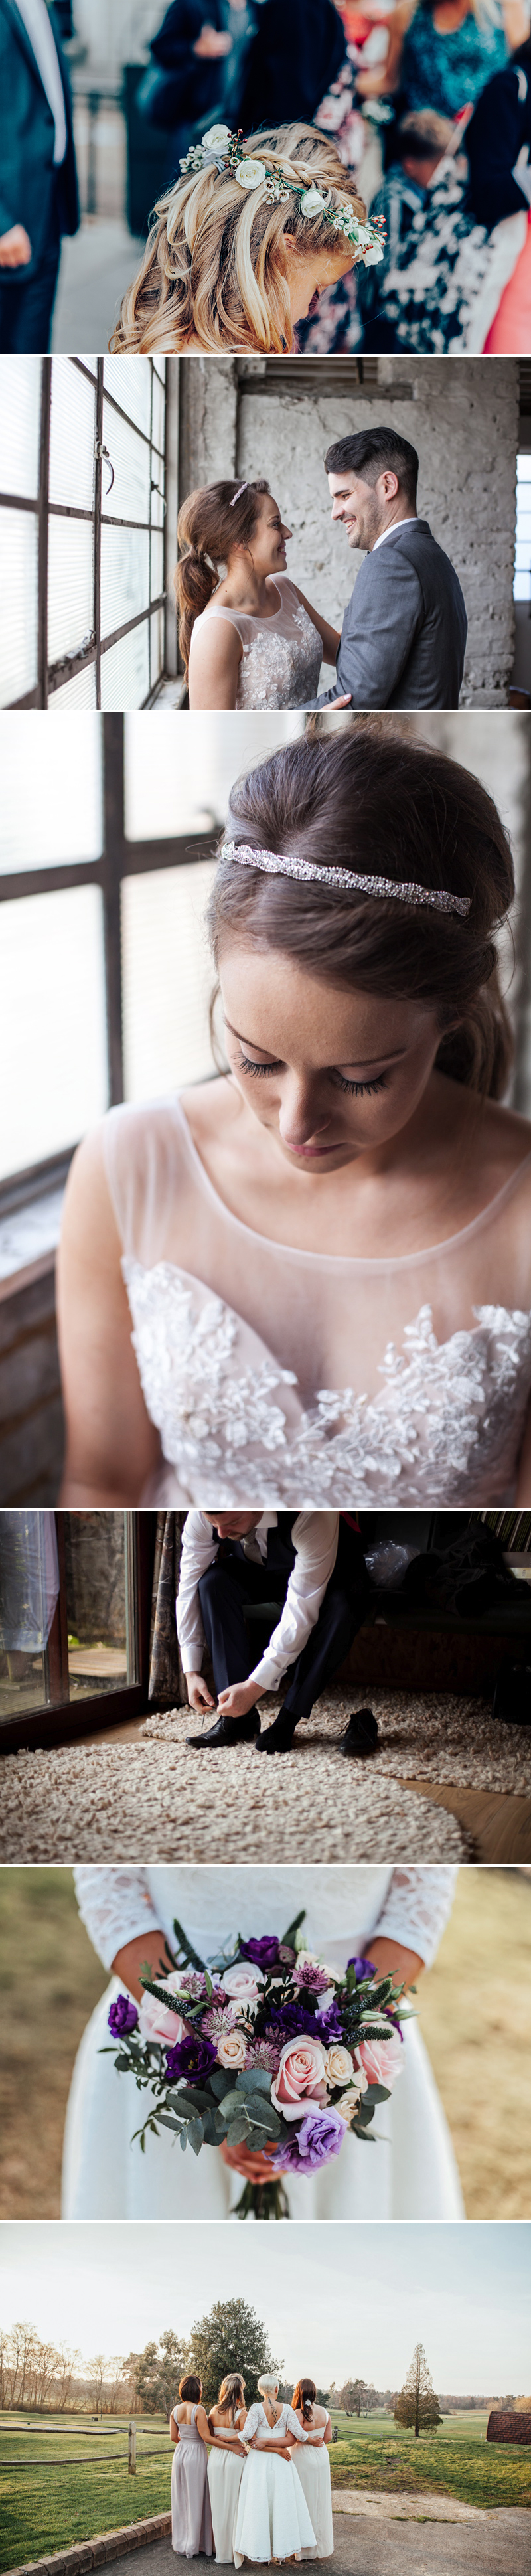 win-your-wedding-photography-with-charlotte-bryer-ash-coco-wedding-venues-competition-2a